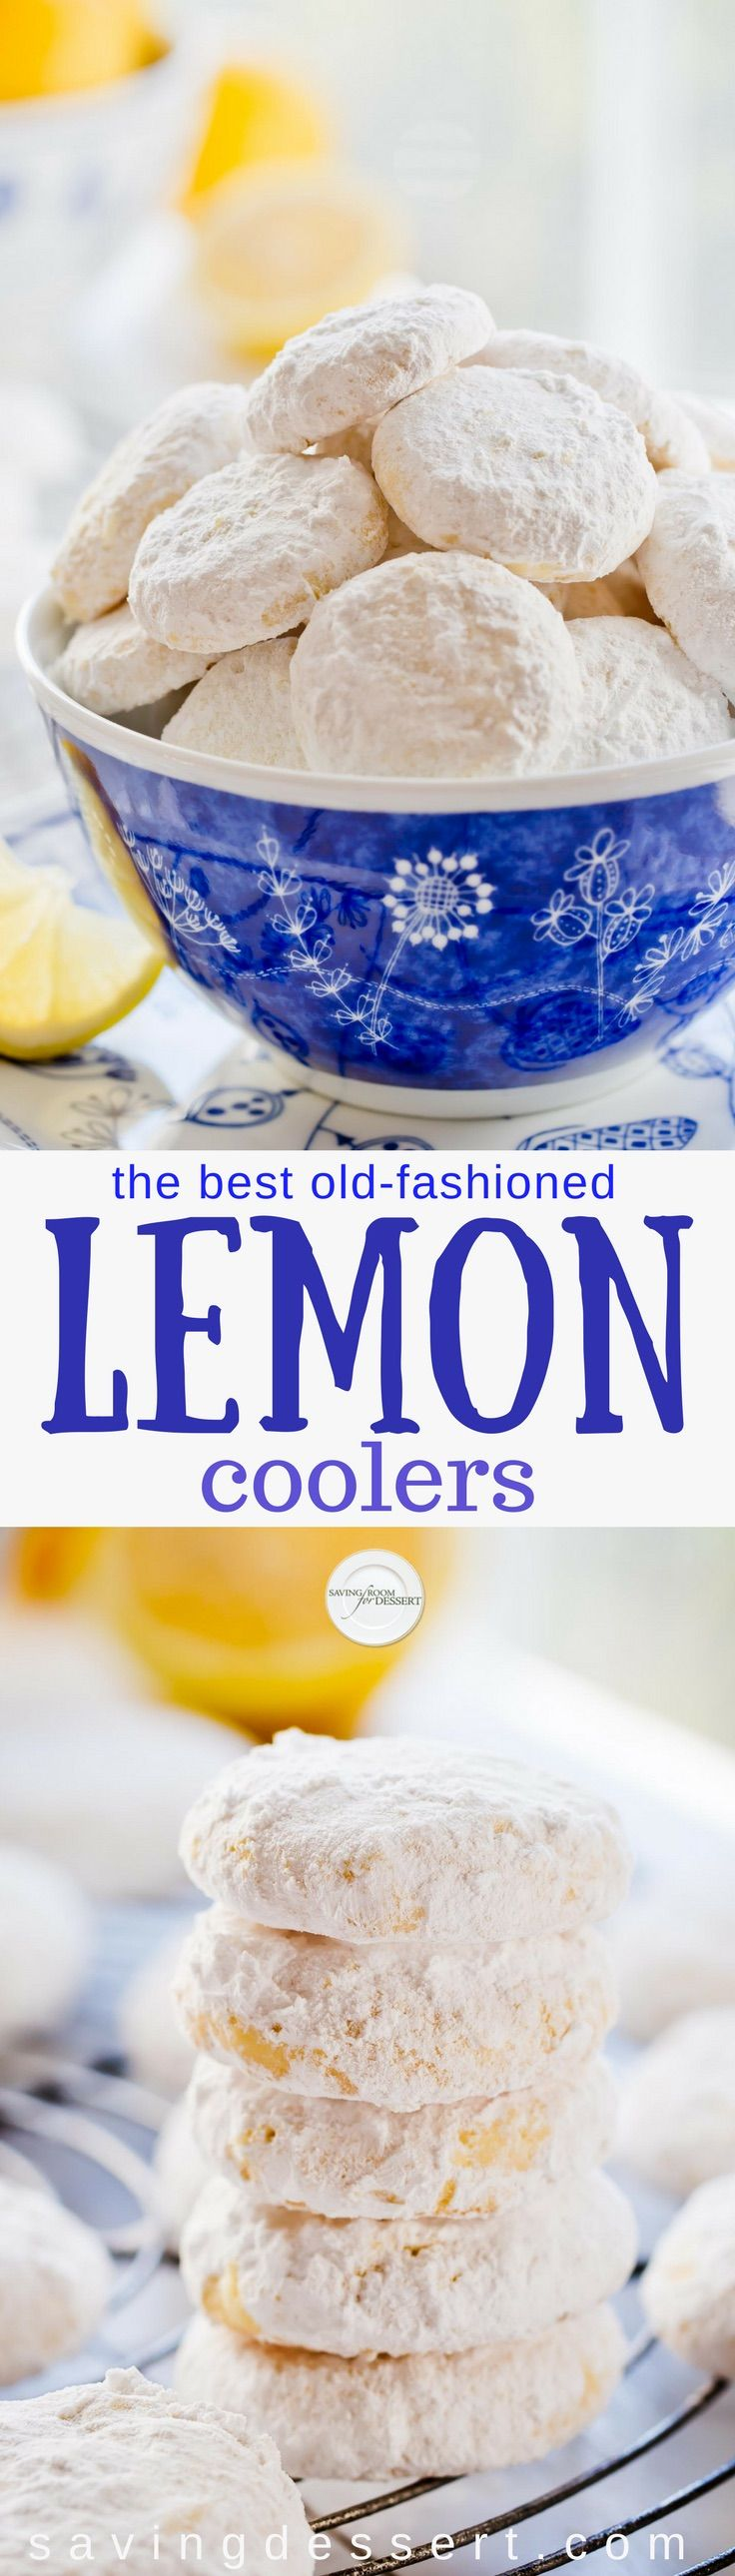 Lemon Coolers - hot from the oven, these melt-in-your mouth cookies are tossed in a mixture of crystallized lemon and powdered sugar for the most incredible intense lemon flavor ever! #savingroomfordessert #lemon #lemoncookies #lemoncoolers #cookies #baking